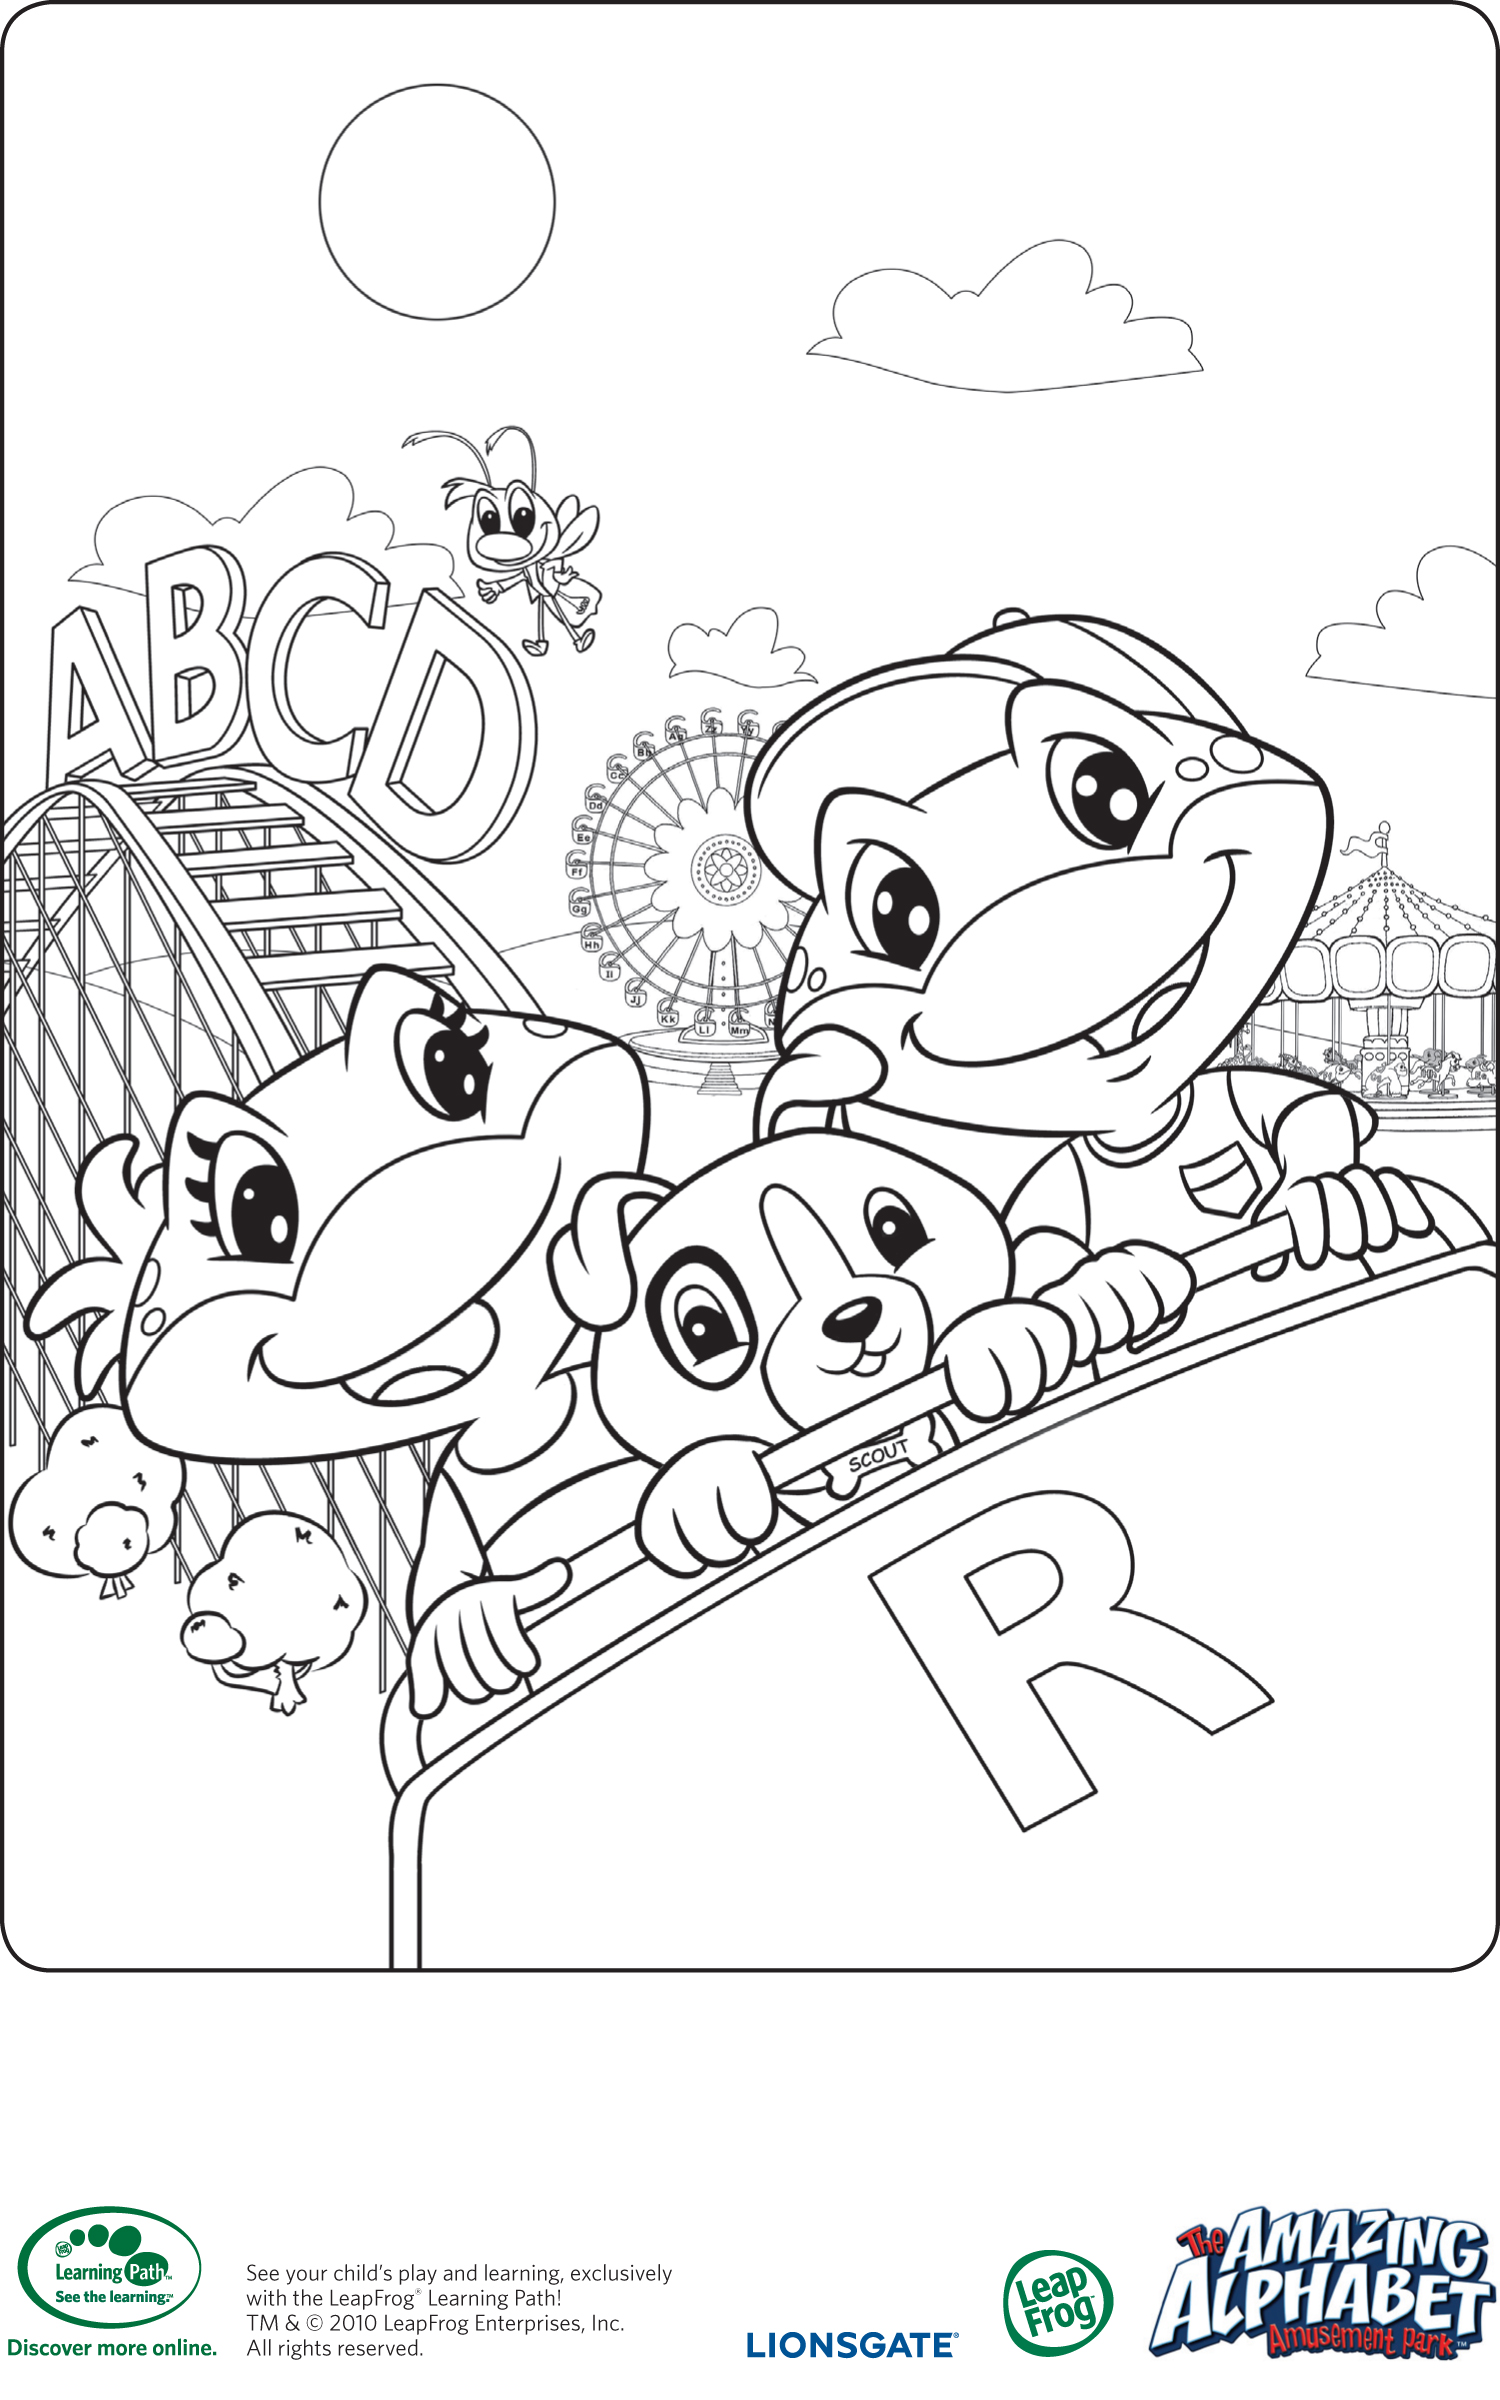 Alphabet Review Coloring Pages : Free coloring pages of alphabet review